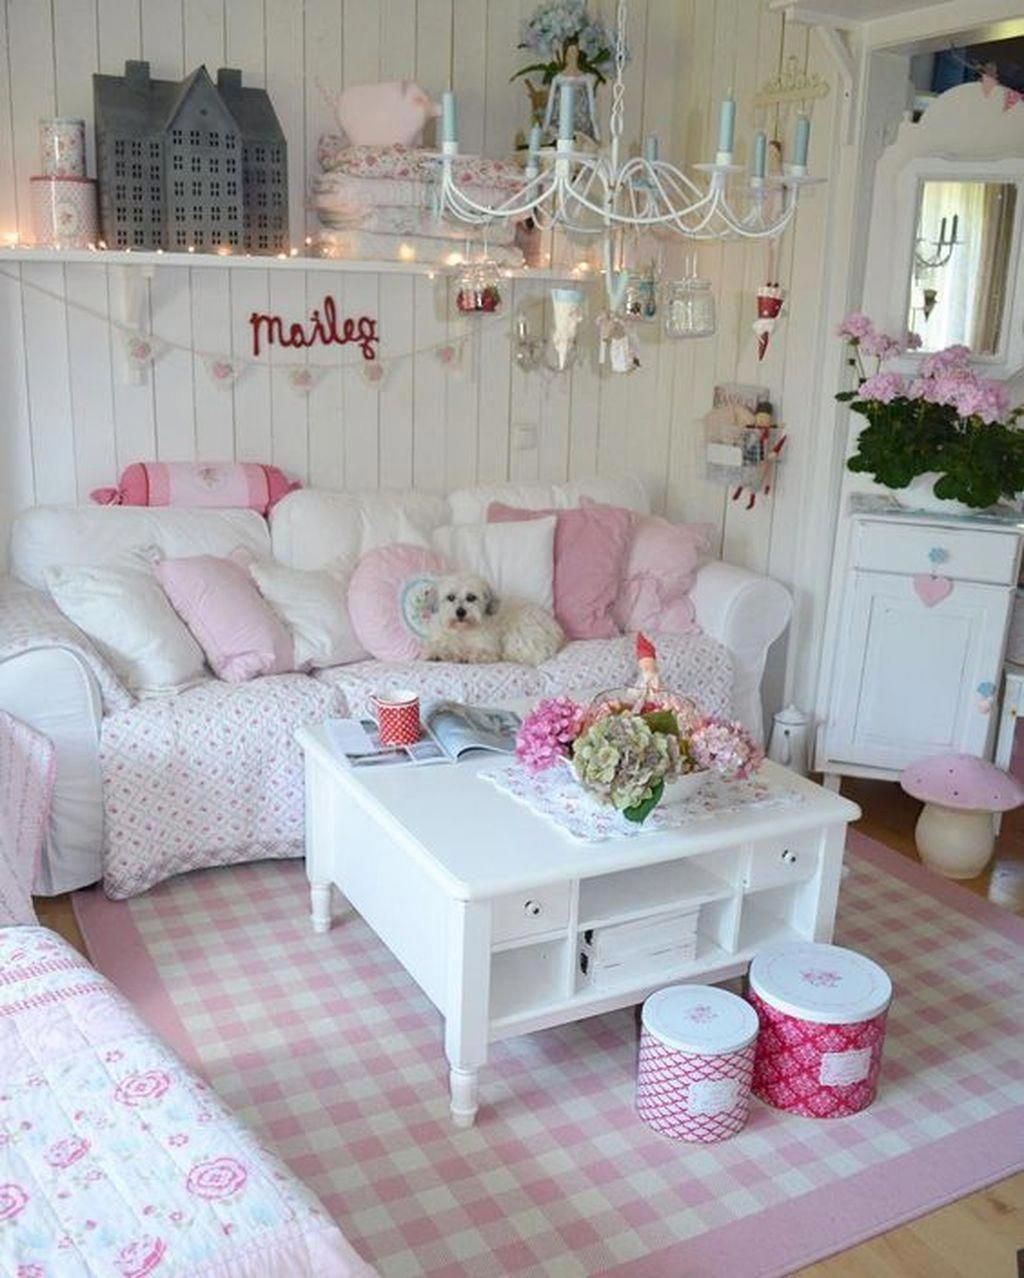 With shabby chic an owner can have a frilly lamp covered